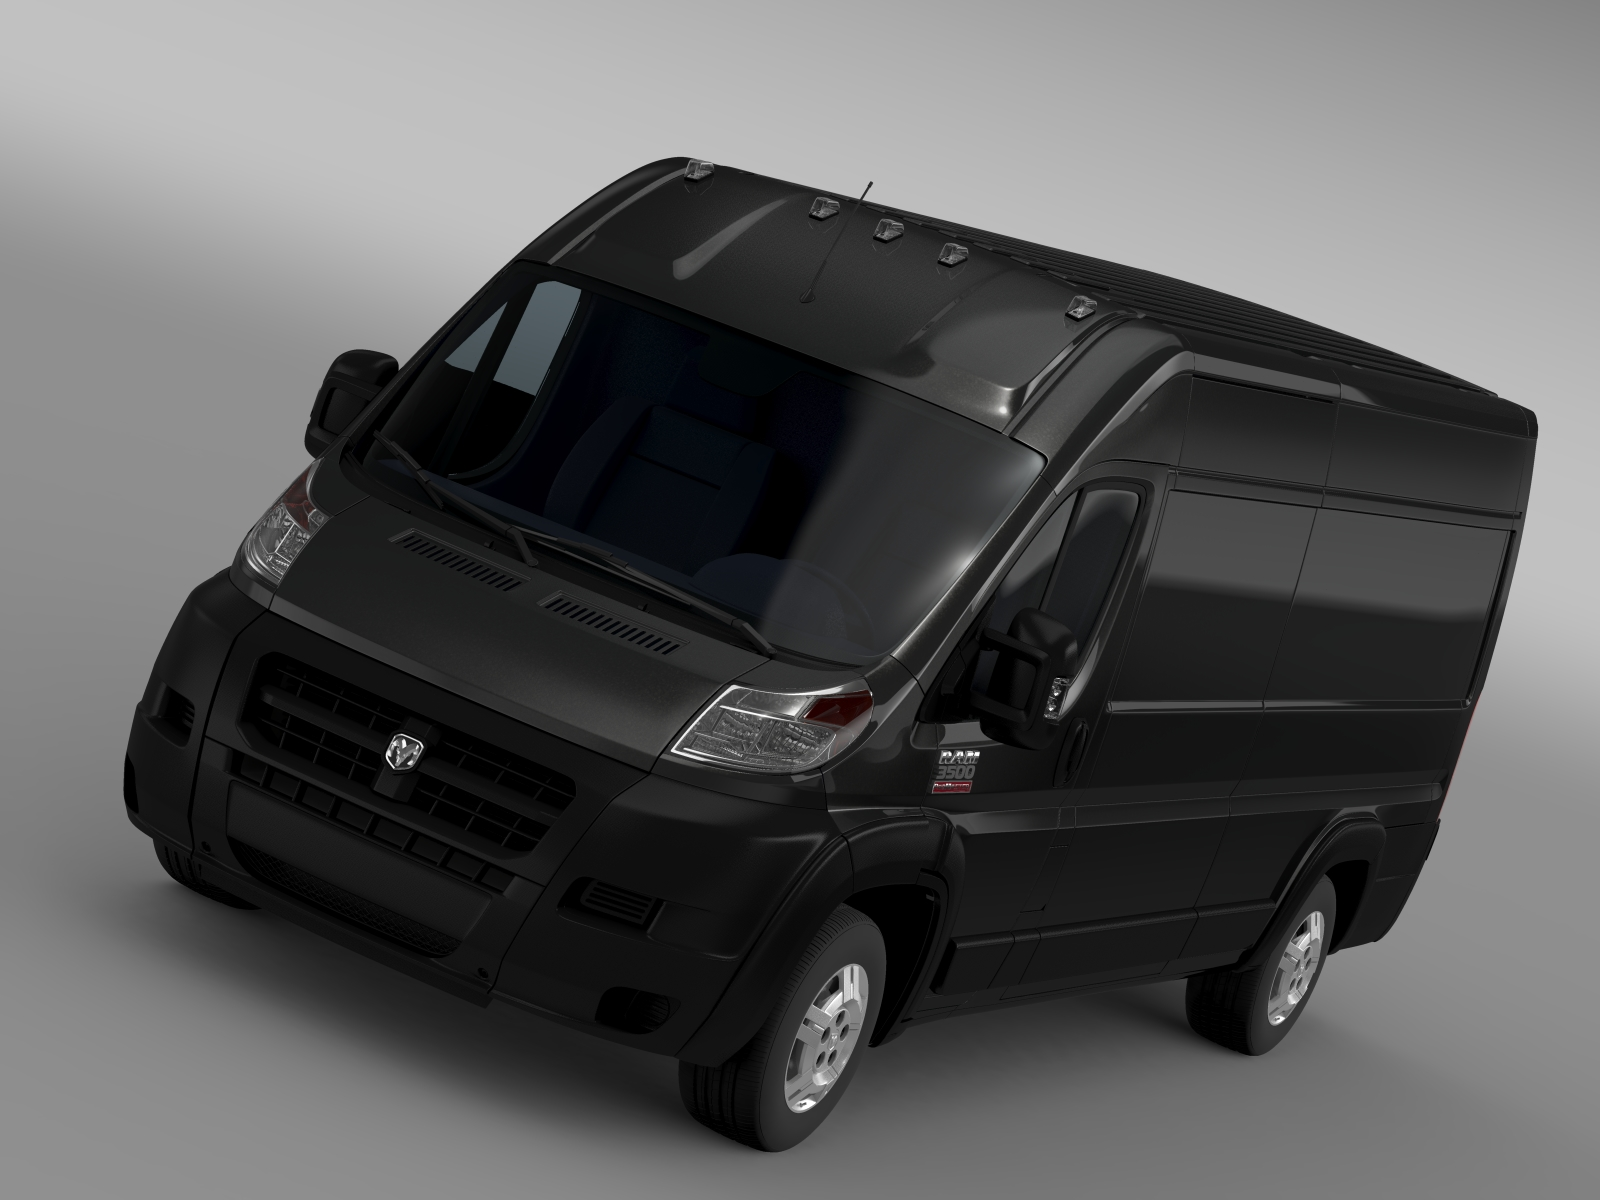 ram promaster cargo 3500 hr 159wb ext 3d model 209499